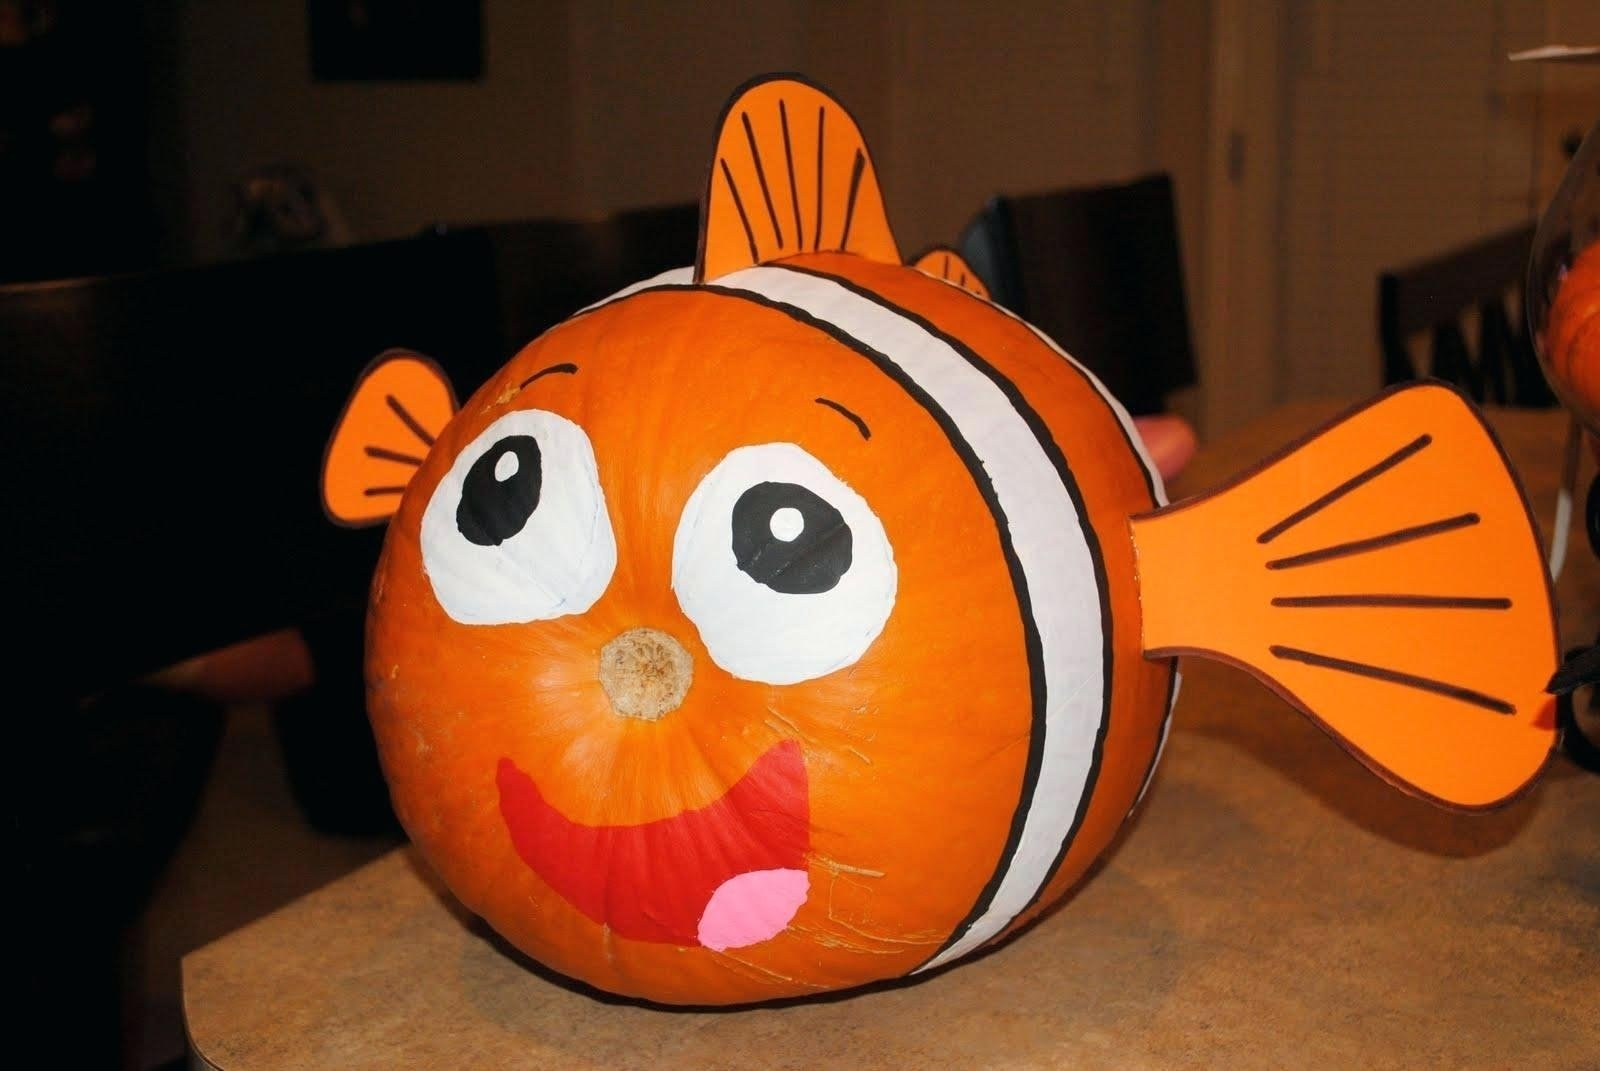 10 Beautiful Pumpkin Decorating Ideas Without Carving For Kids decoration non carving pumpkin designs back to painting ideas for 2020